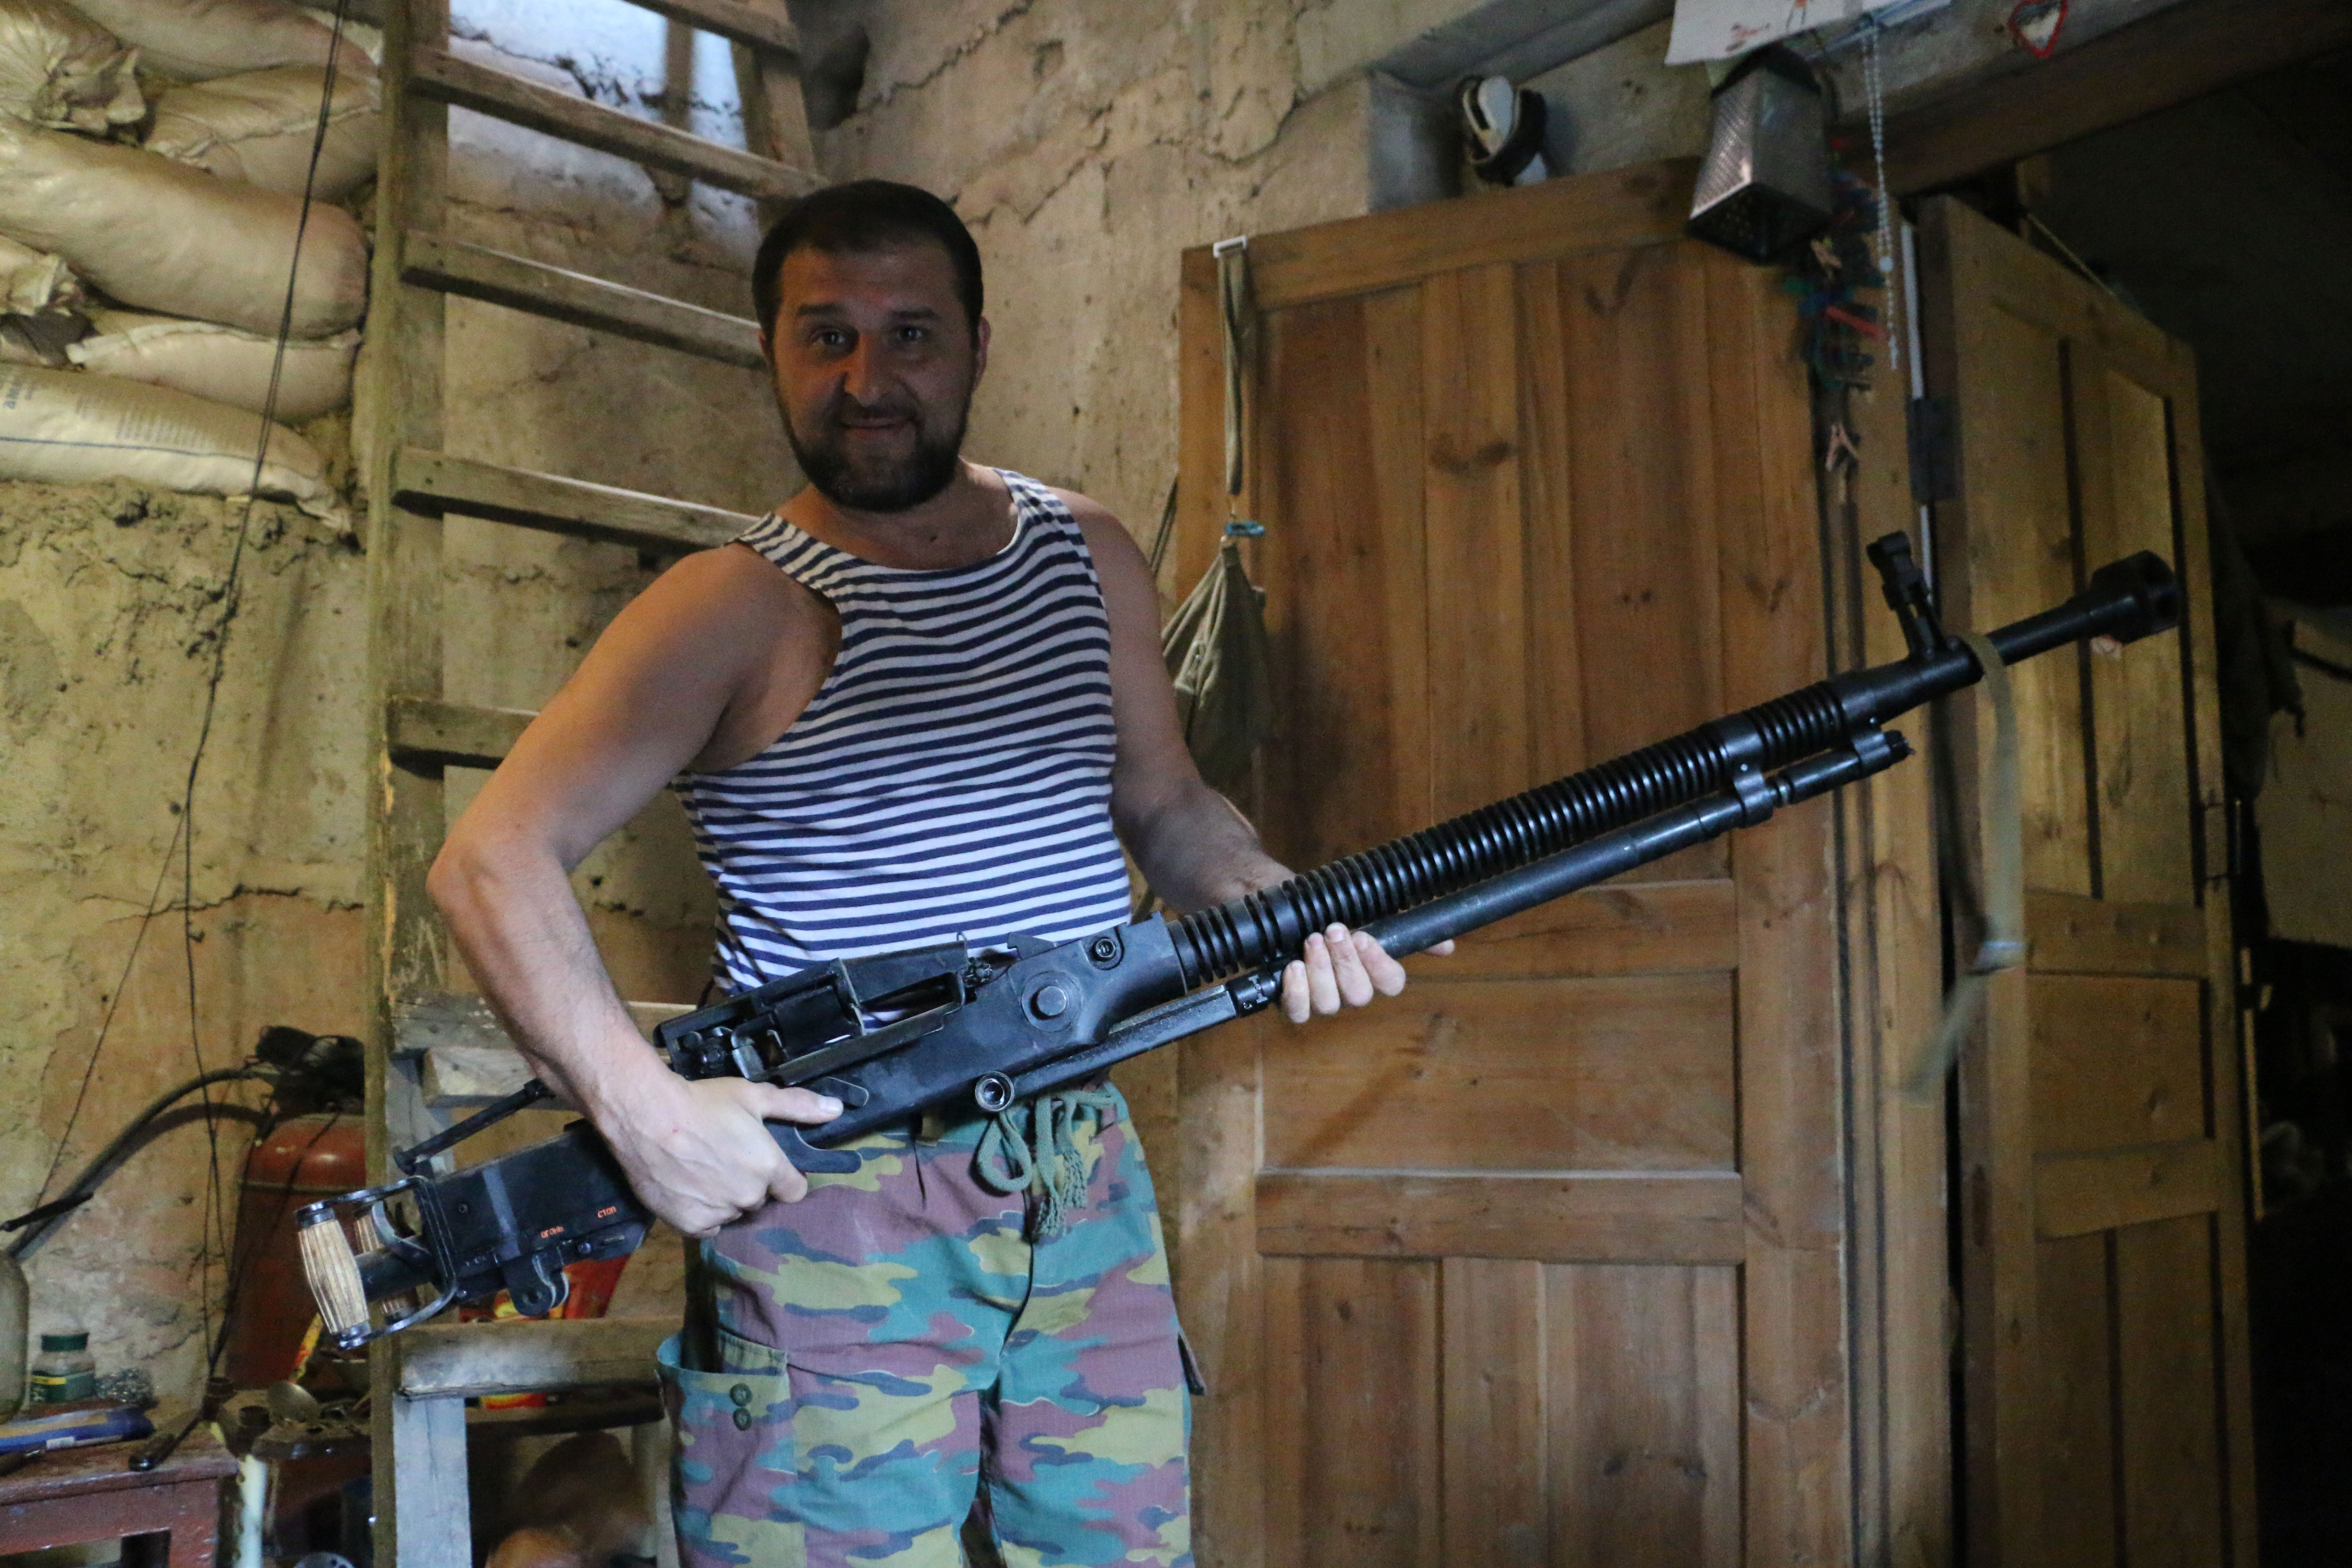 Ukrainian troops use surplus Soviet weapons on the front lines in eastern Ukraine.